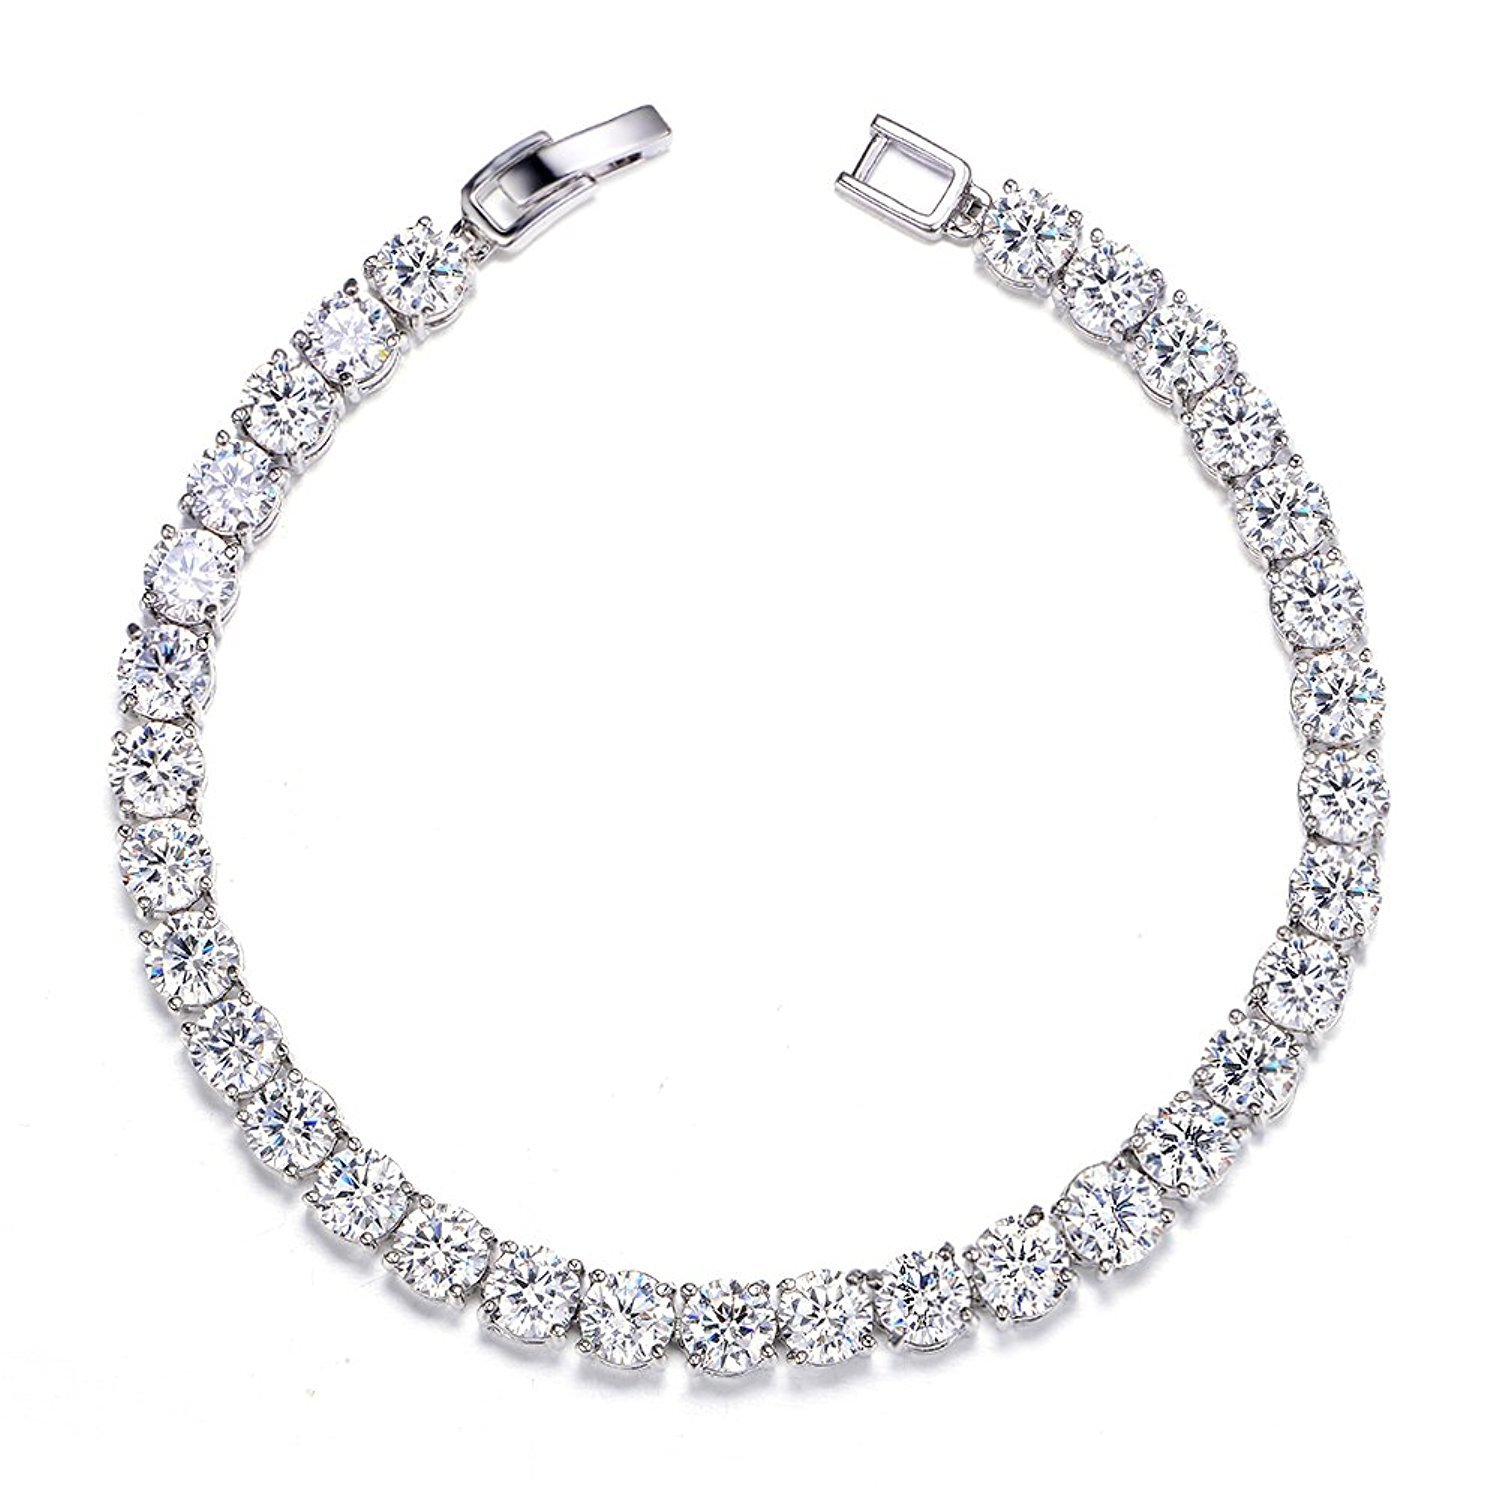 Meetyoo Tennis Bracelet With Swarovski Elements Crystal Jewelry Women Lady Zirconia Platinum Plated Bangle for her by Meetyoo (Image #5)